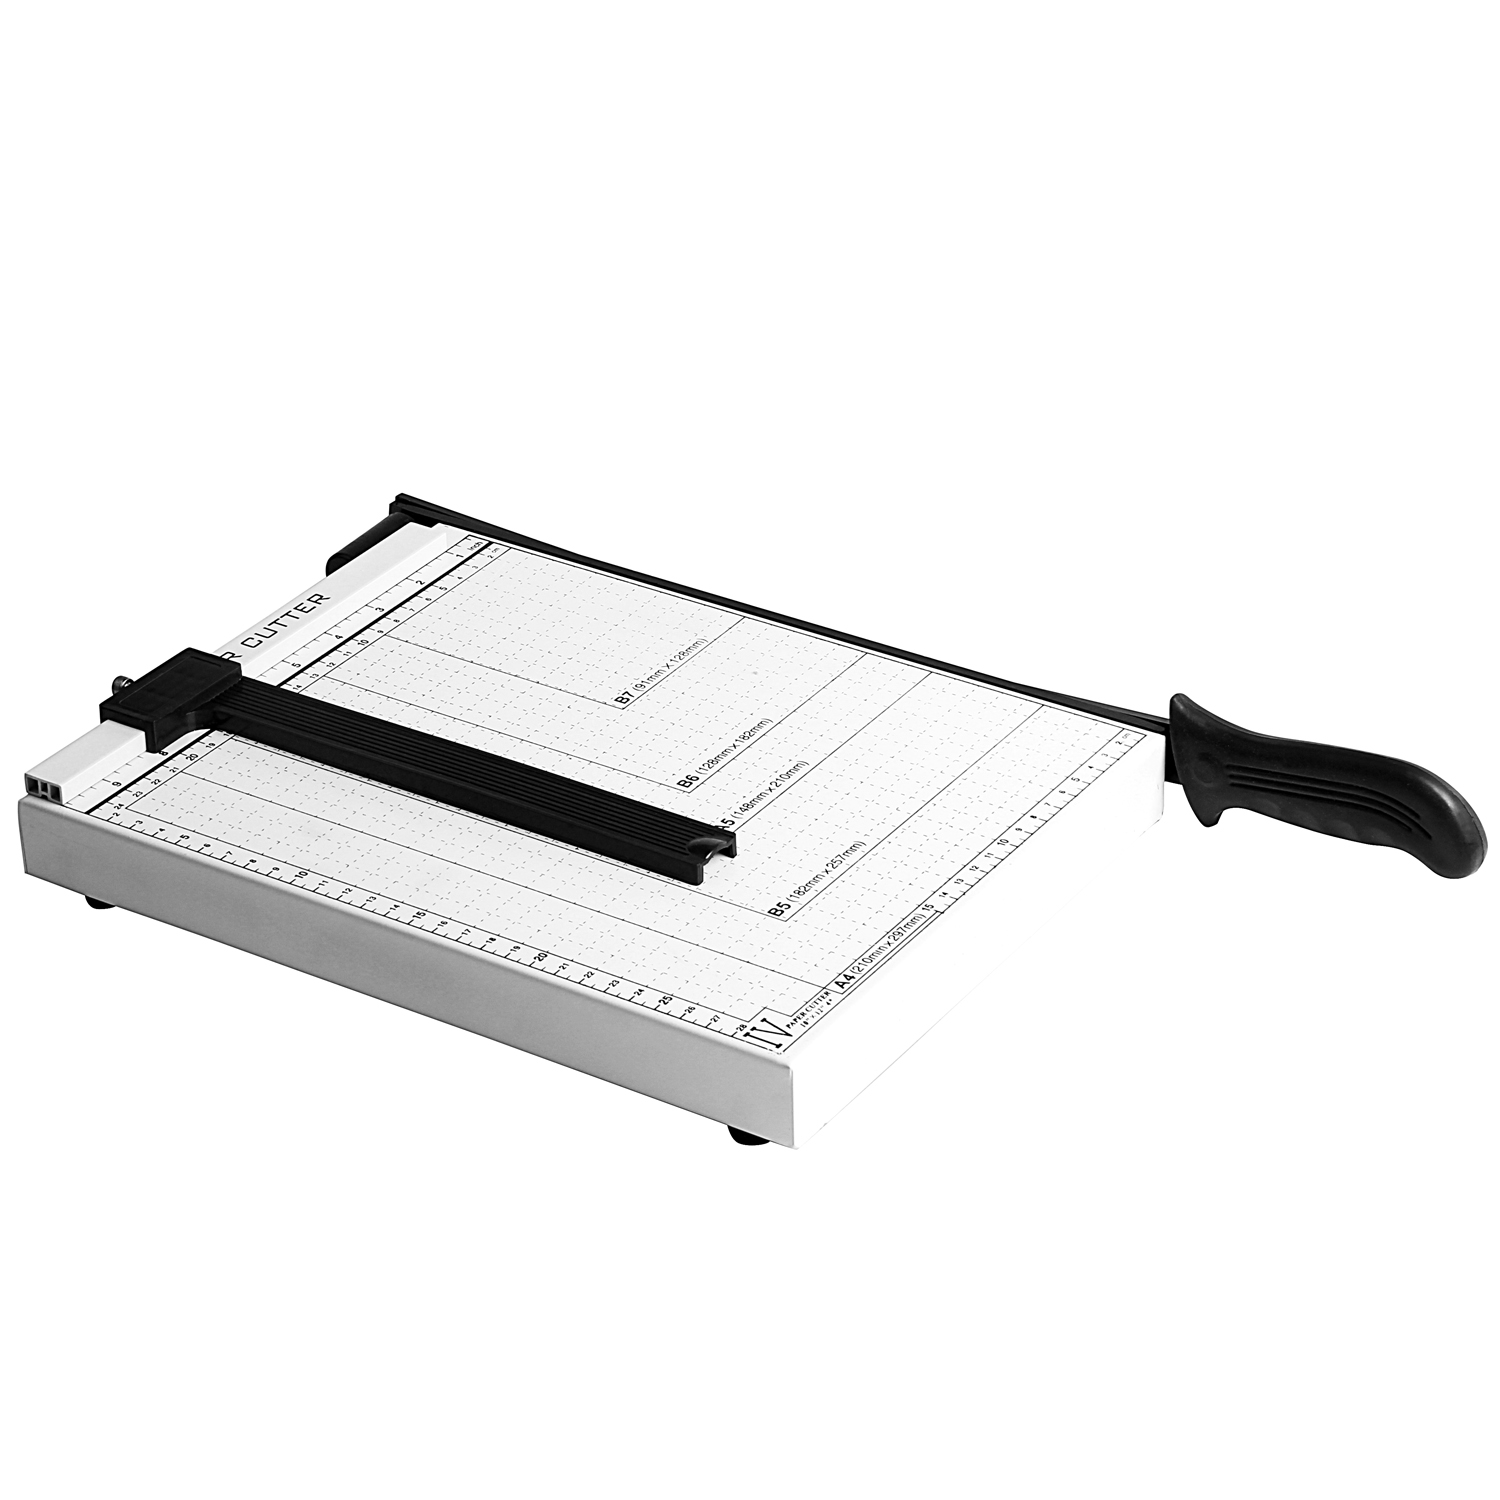 Professional A4 Paper Card Trimmer Guillotine Photo Cutter Craft For Home / Office Use 2016 new a4 paper photo cutter guillotine cutting machine trimmer base 5 10 sheets with grid